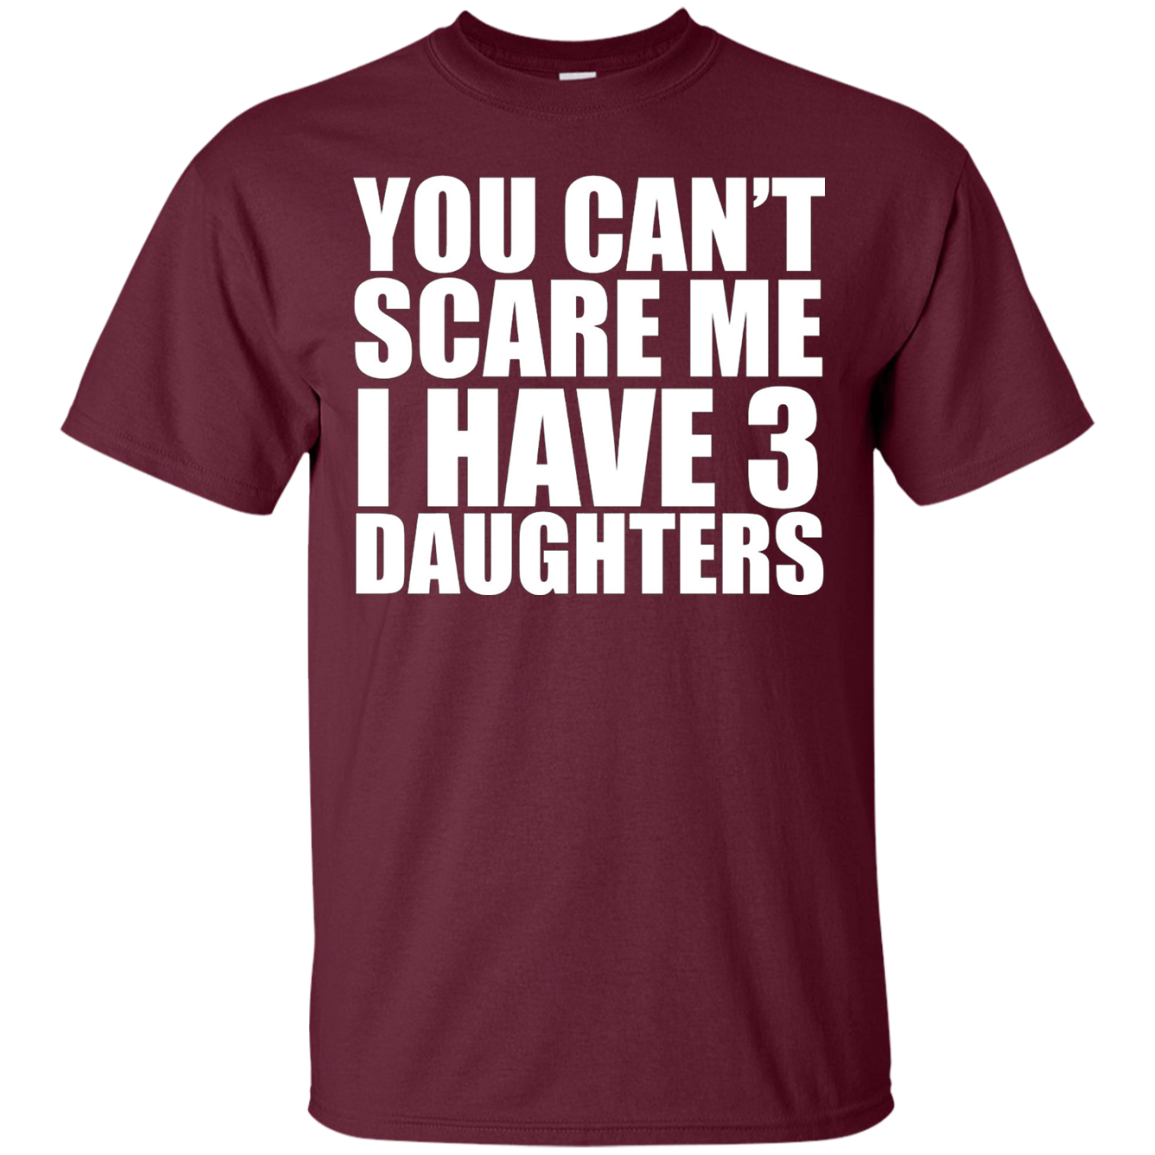 You can't scare me I have 3 daughters Funny t-shirt Parents - T-Shirt